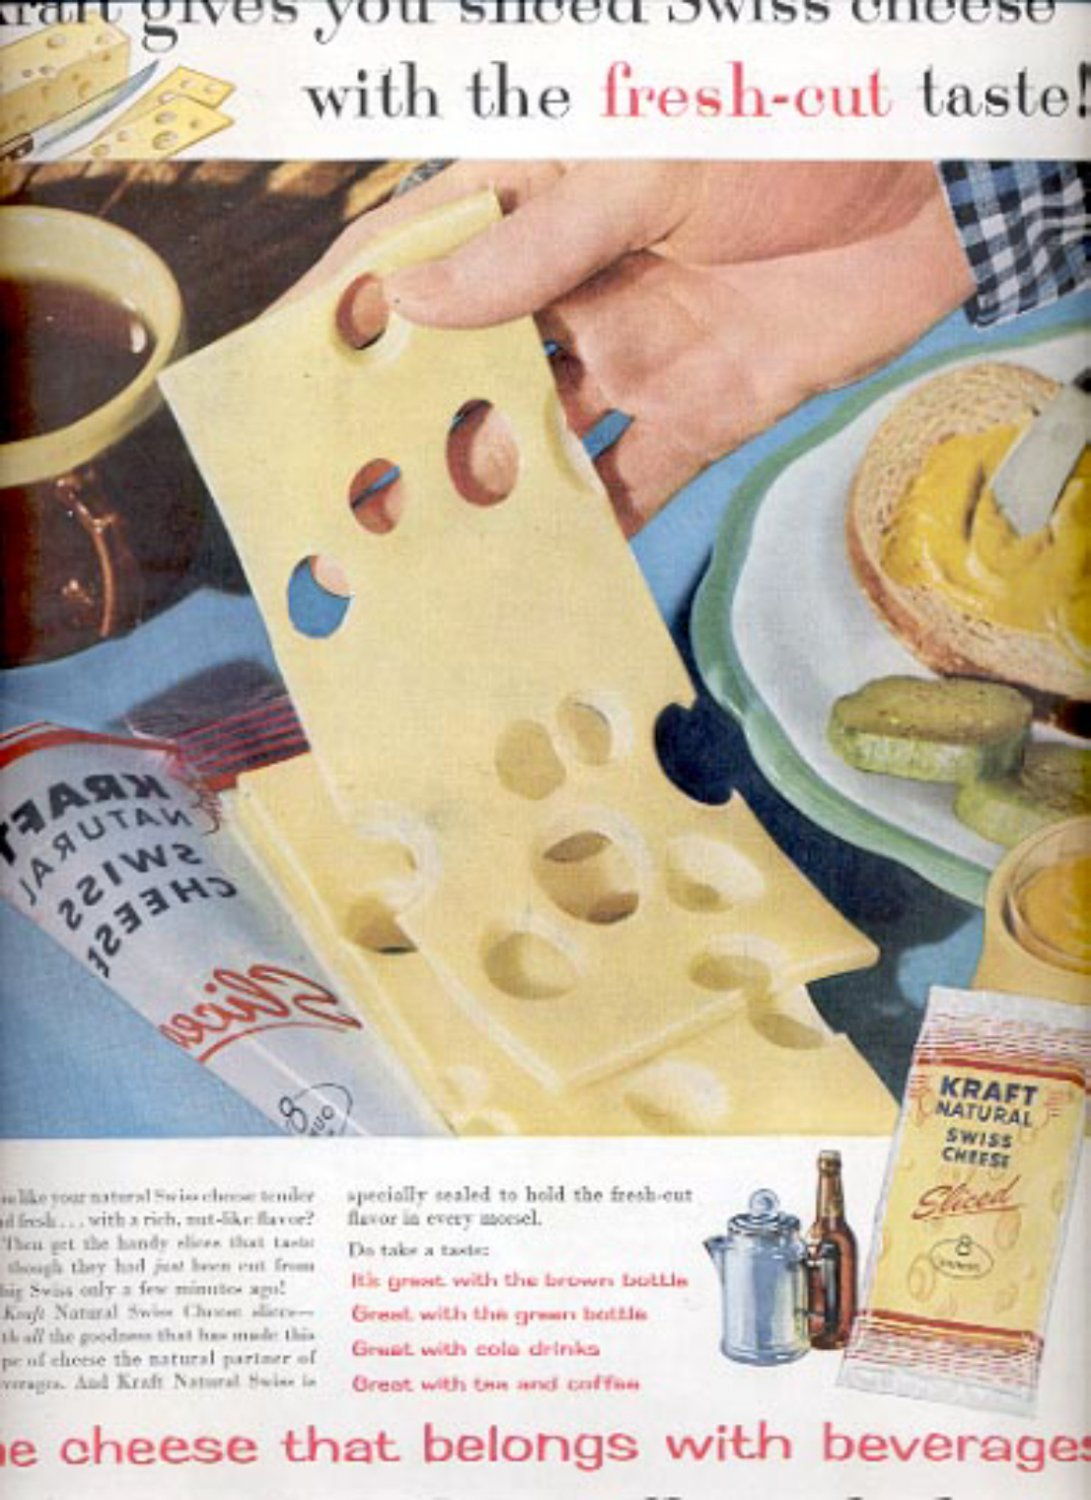 1957  Kraft Natural Swiss Cheese sliced   ad (# 4959)